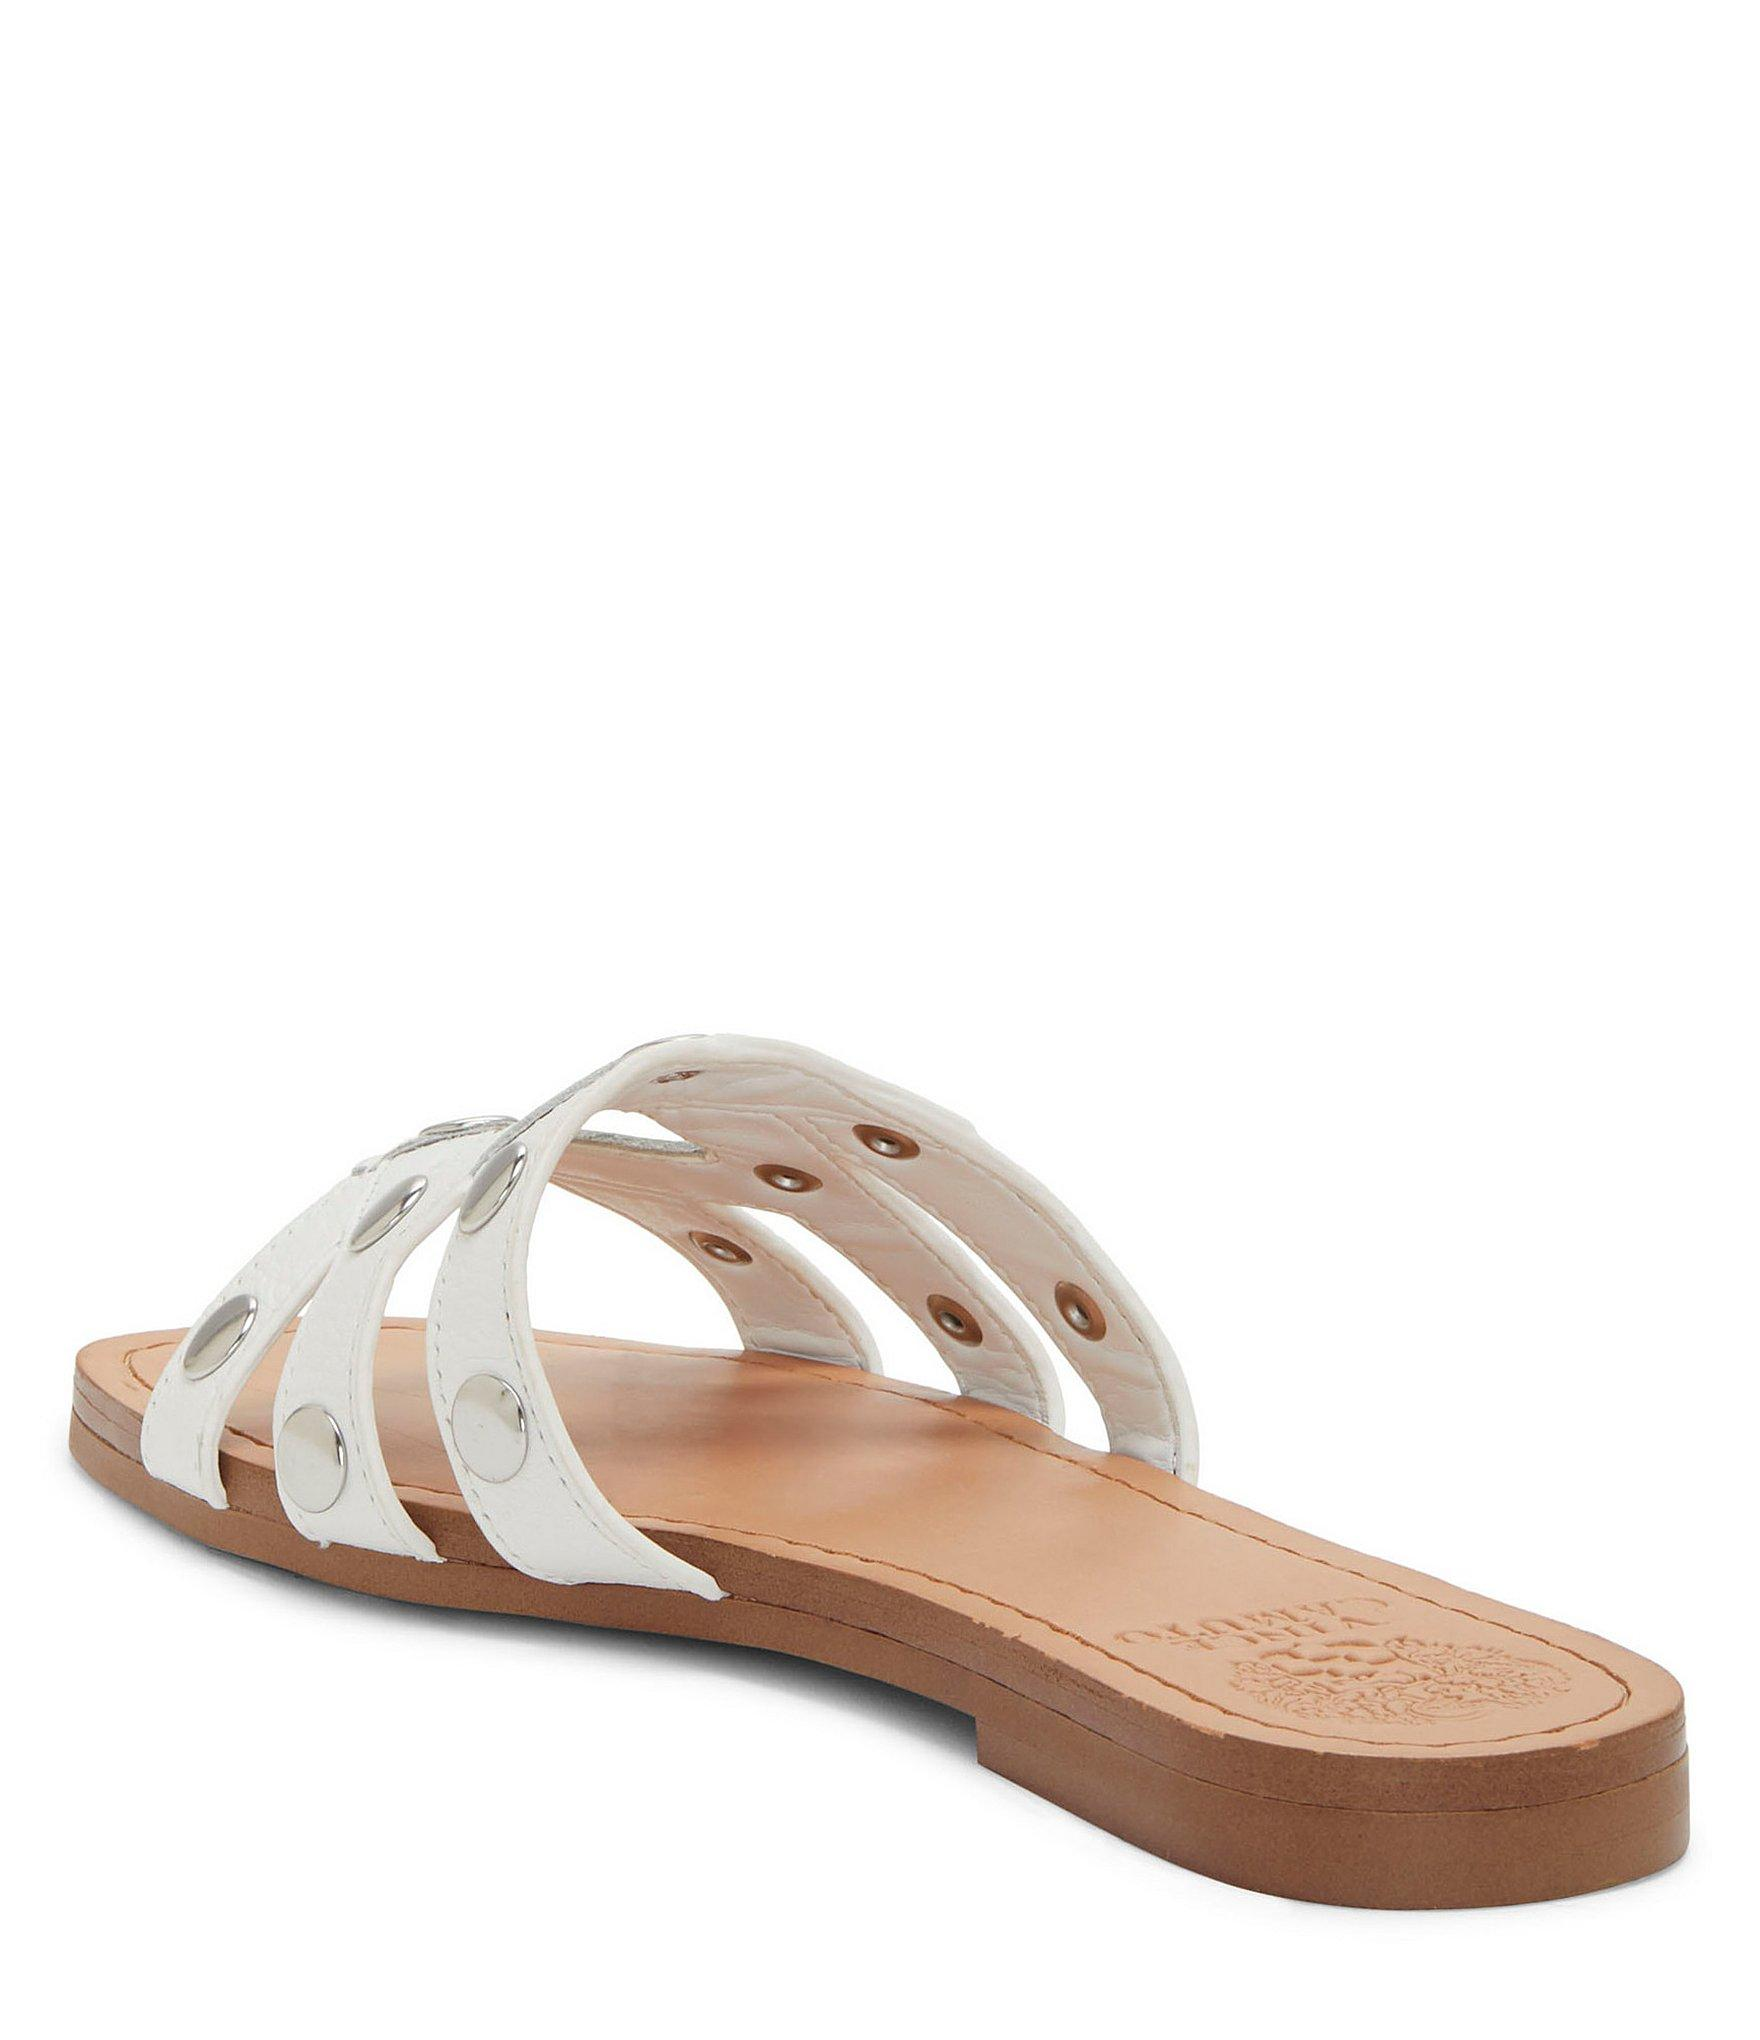 a867842a2150 Vince Camuto - Multicolor Vazista Leather Stud Slides - Lyst. View  fullscreen